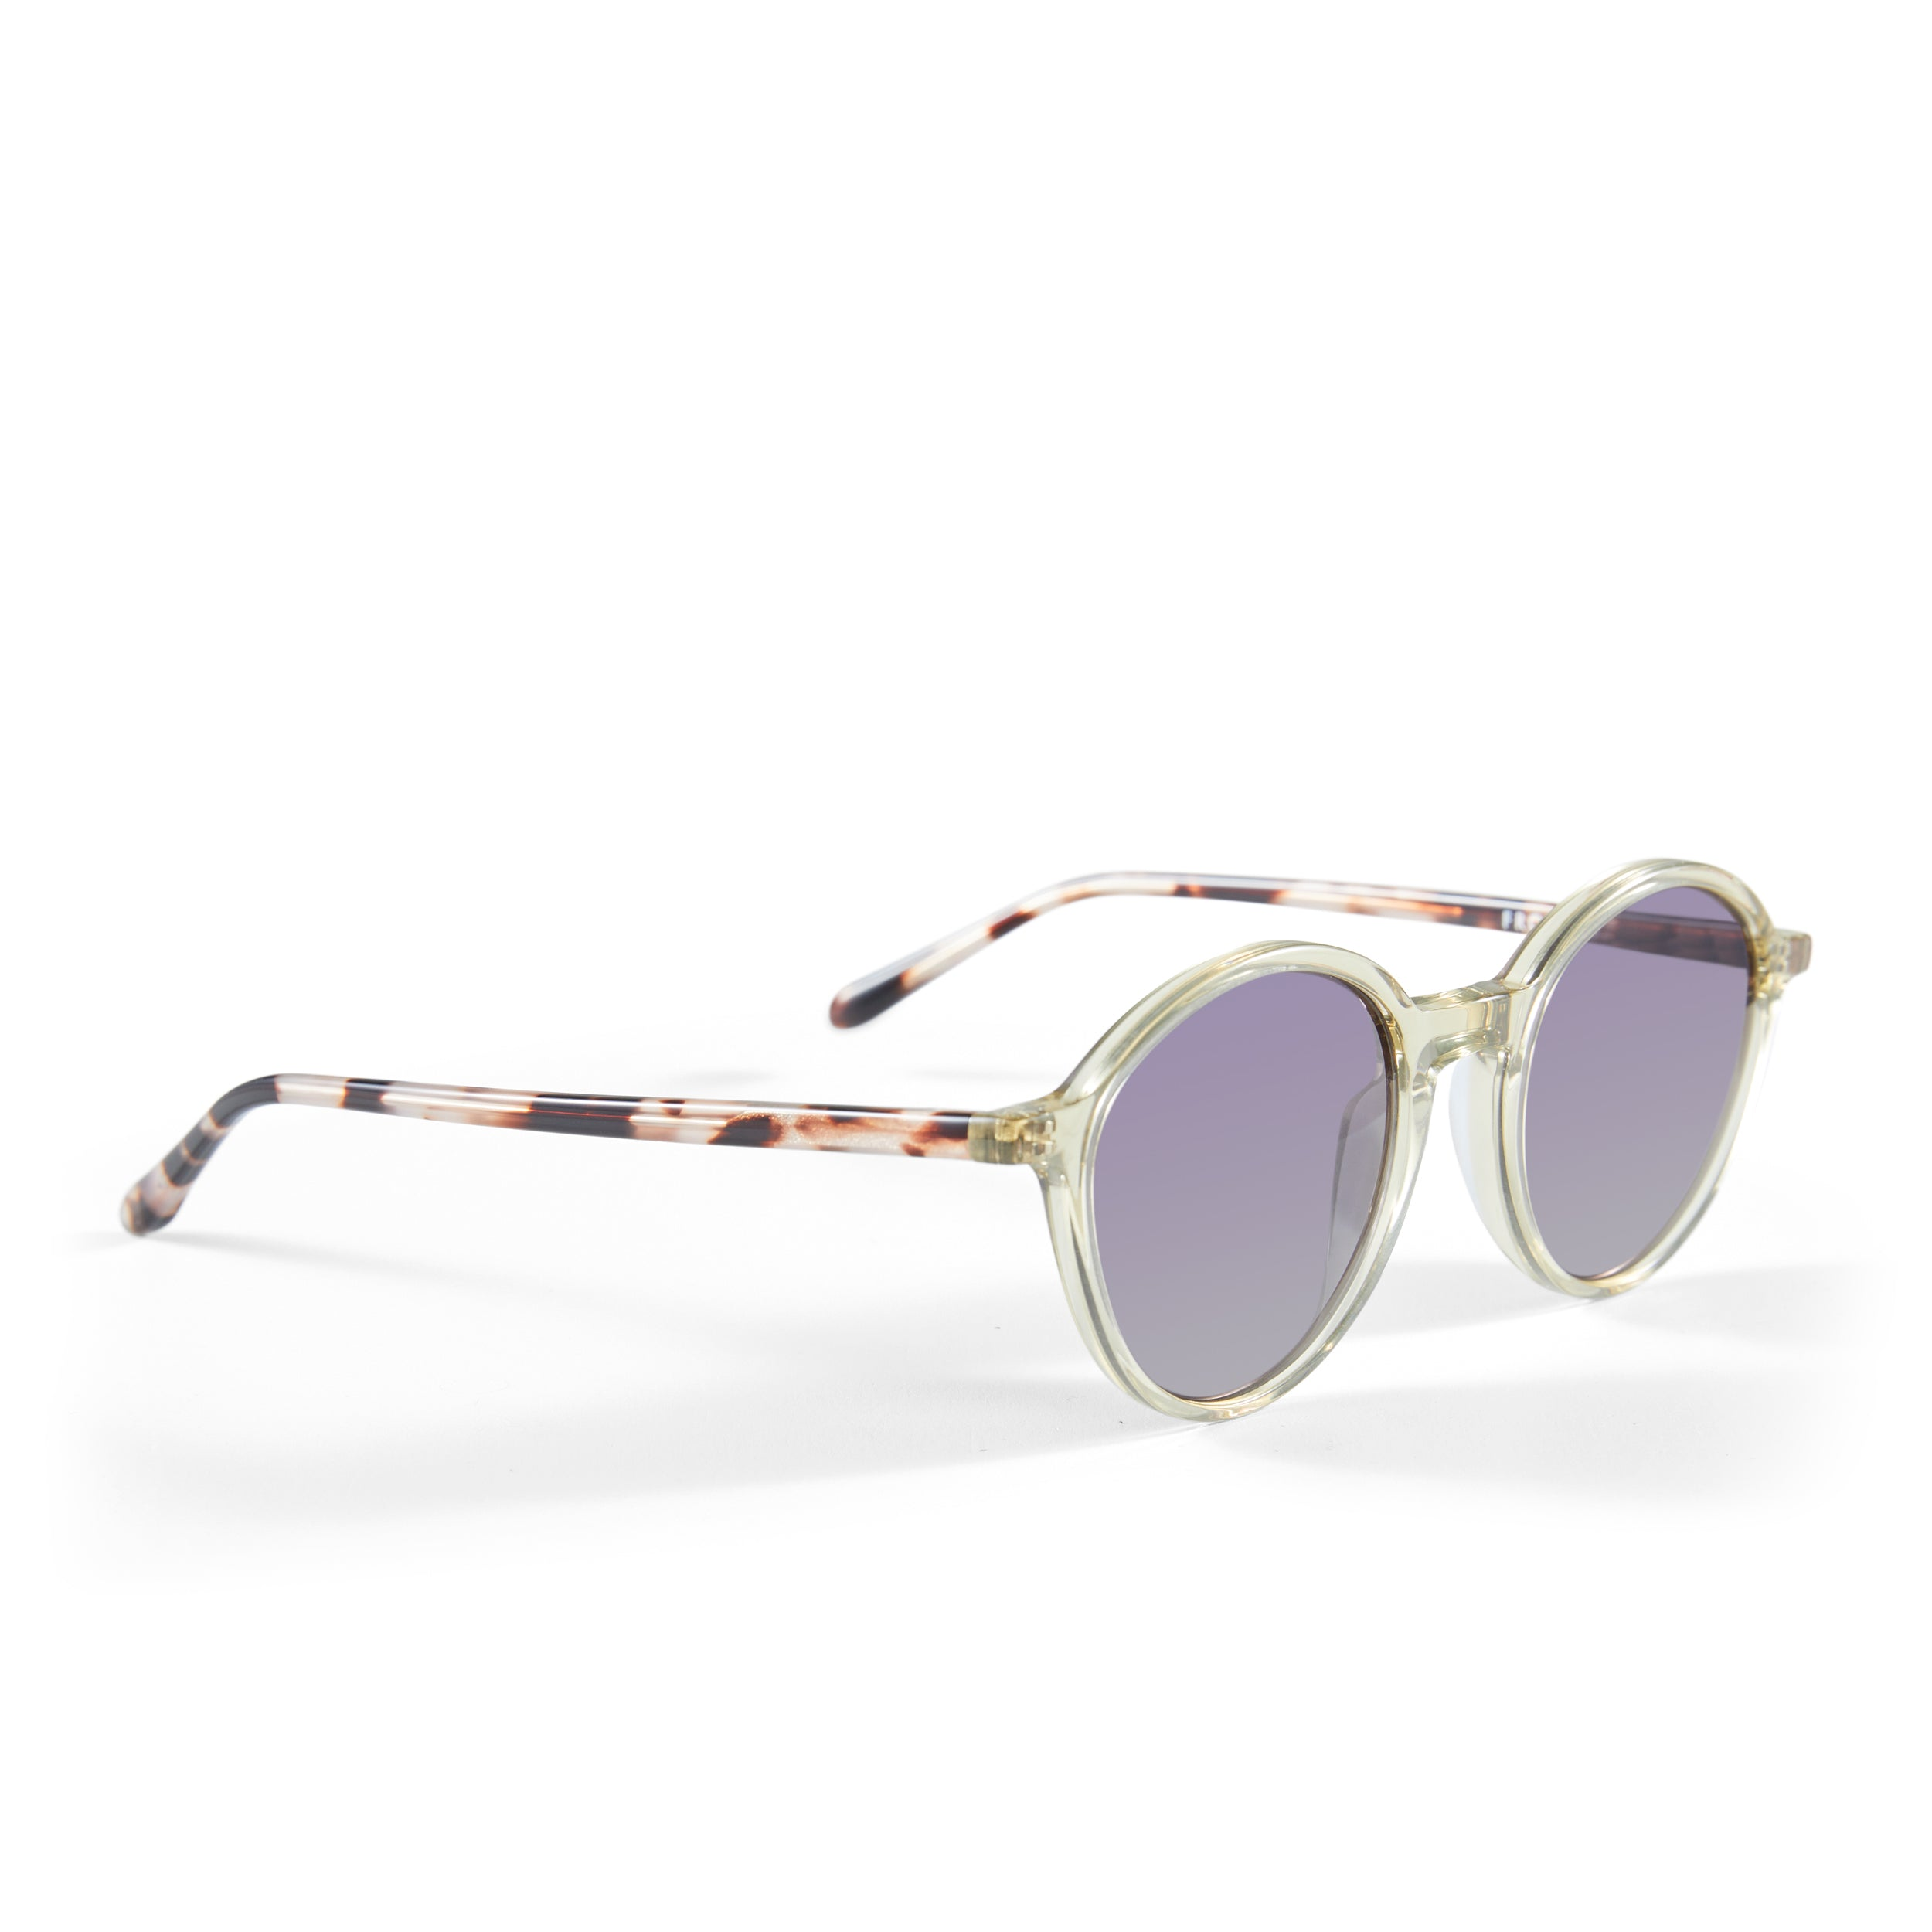 From Sid, The Bowie - Men's Sunglasses & Eyewear by Luv Lou